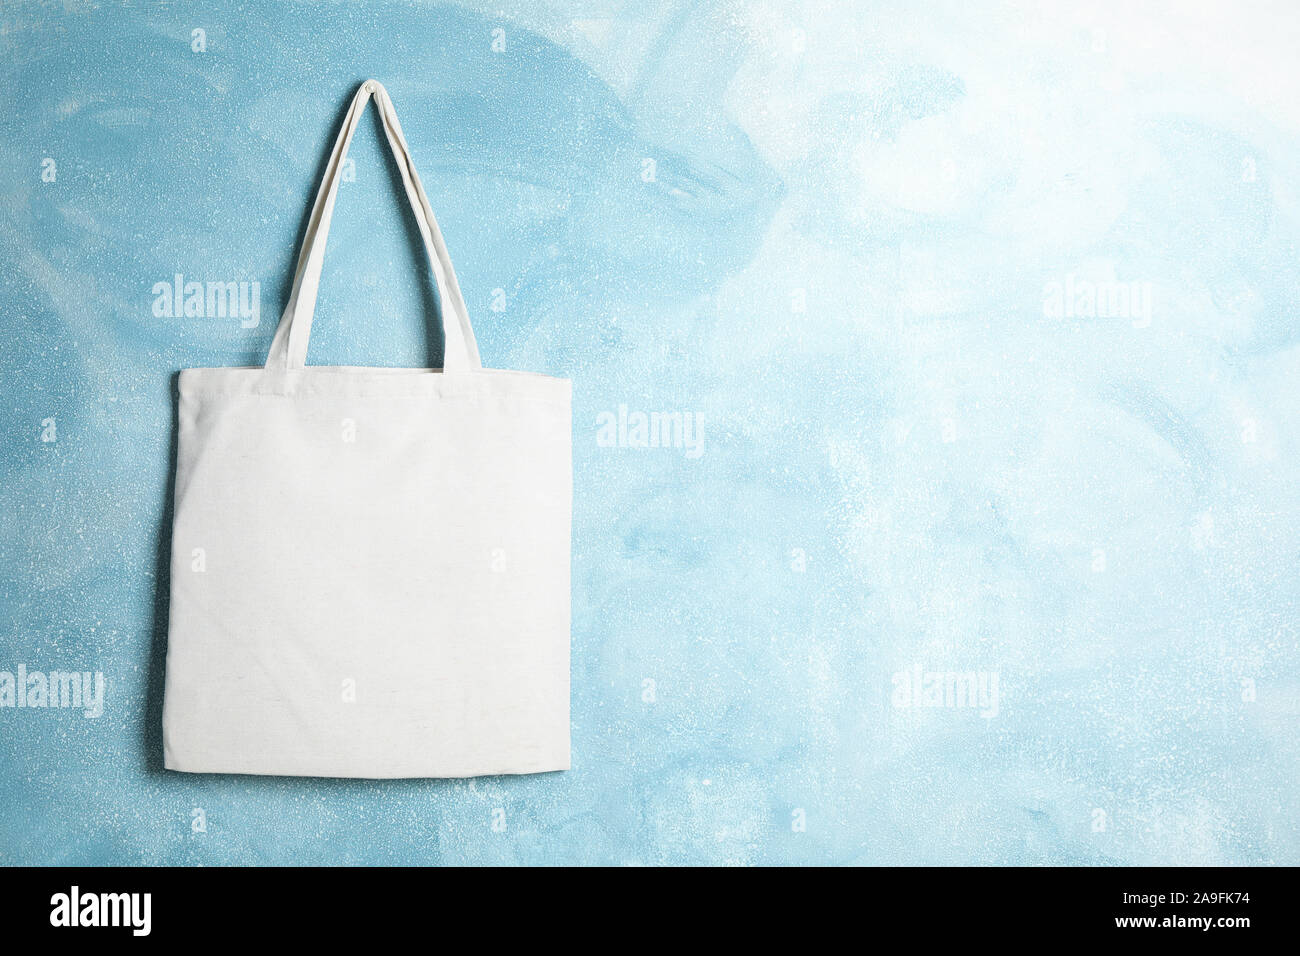 Car branding mockup free psd. Tote Bag Brand High Resolution Stock Photography And Images Alamy